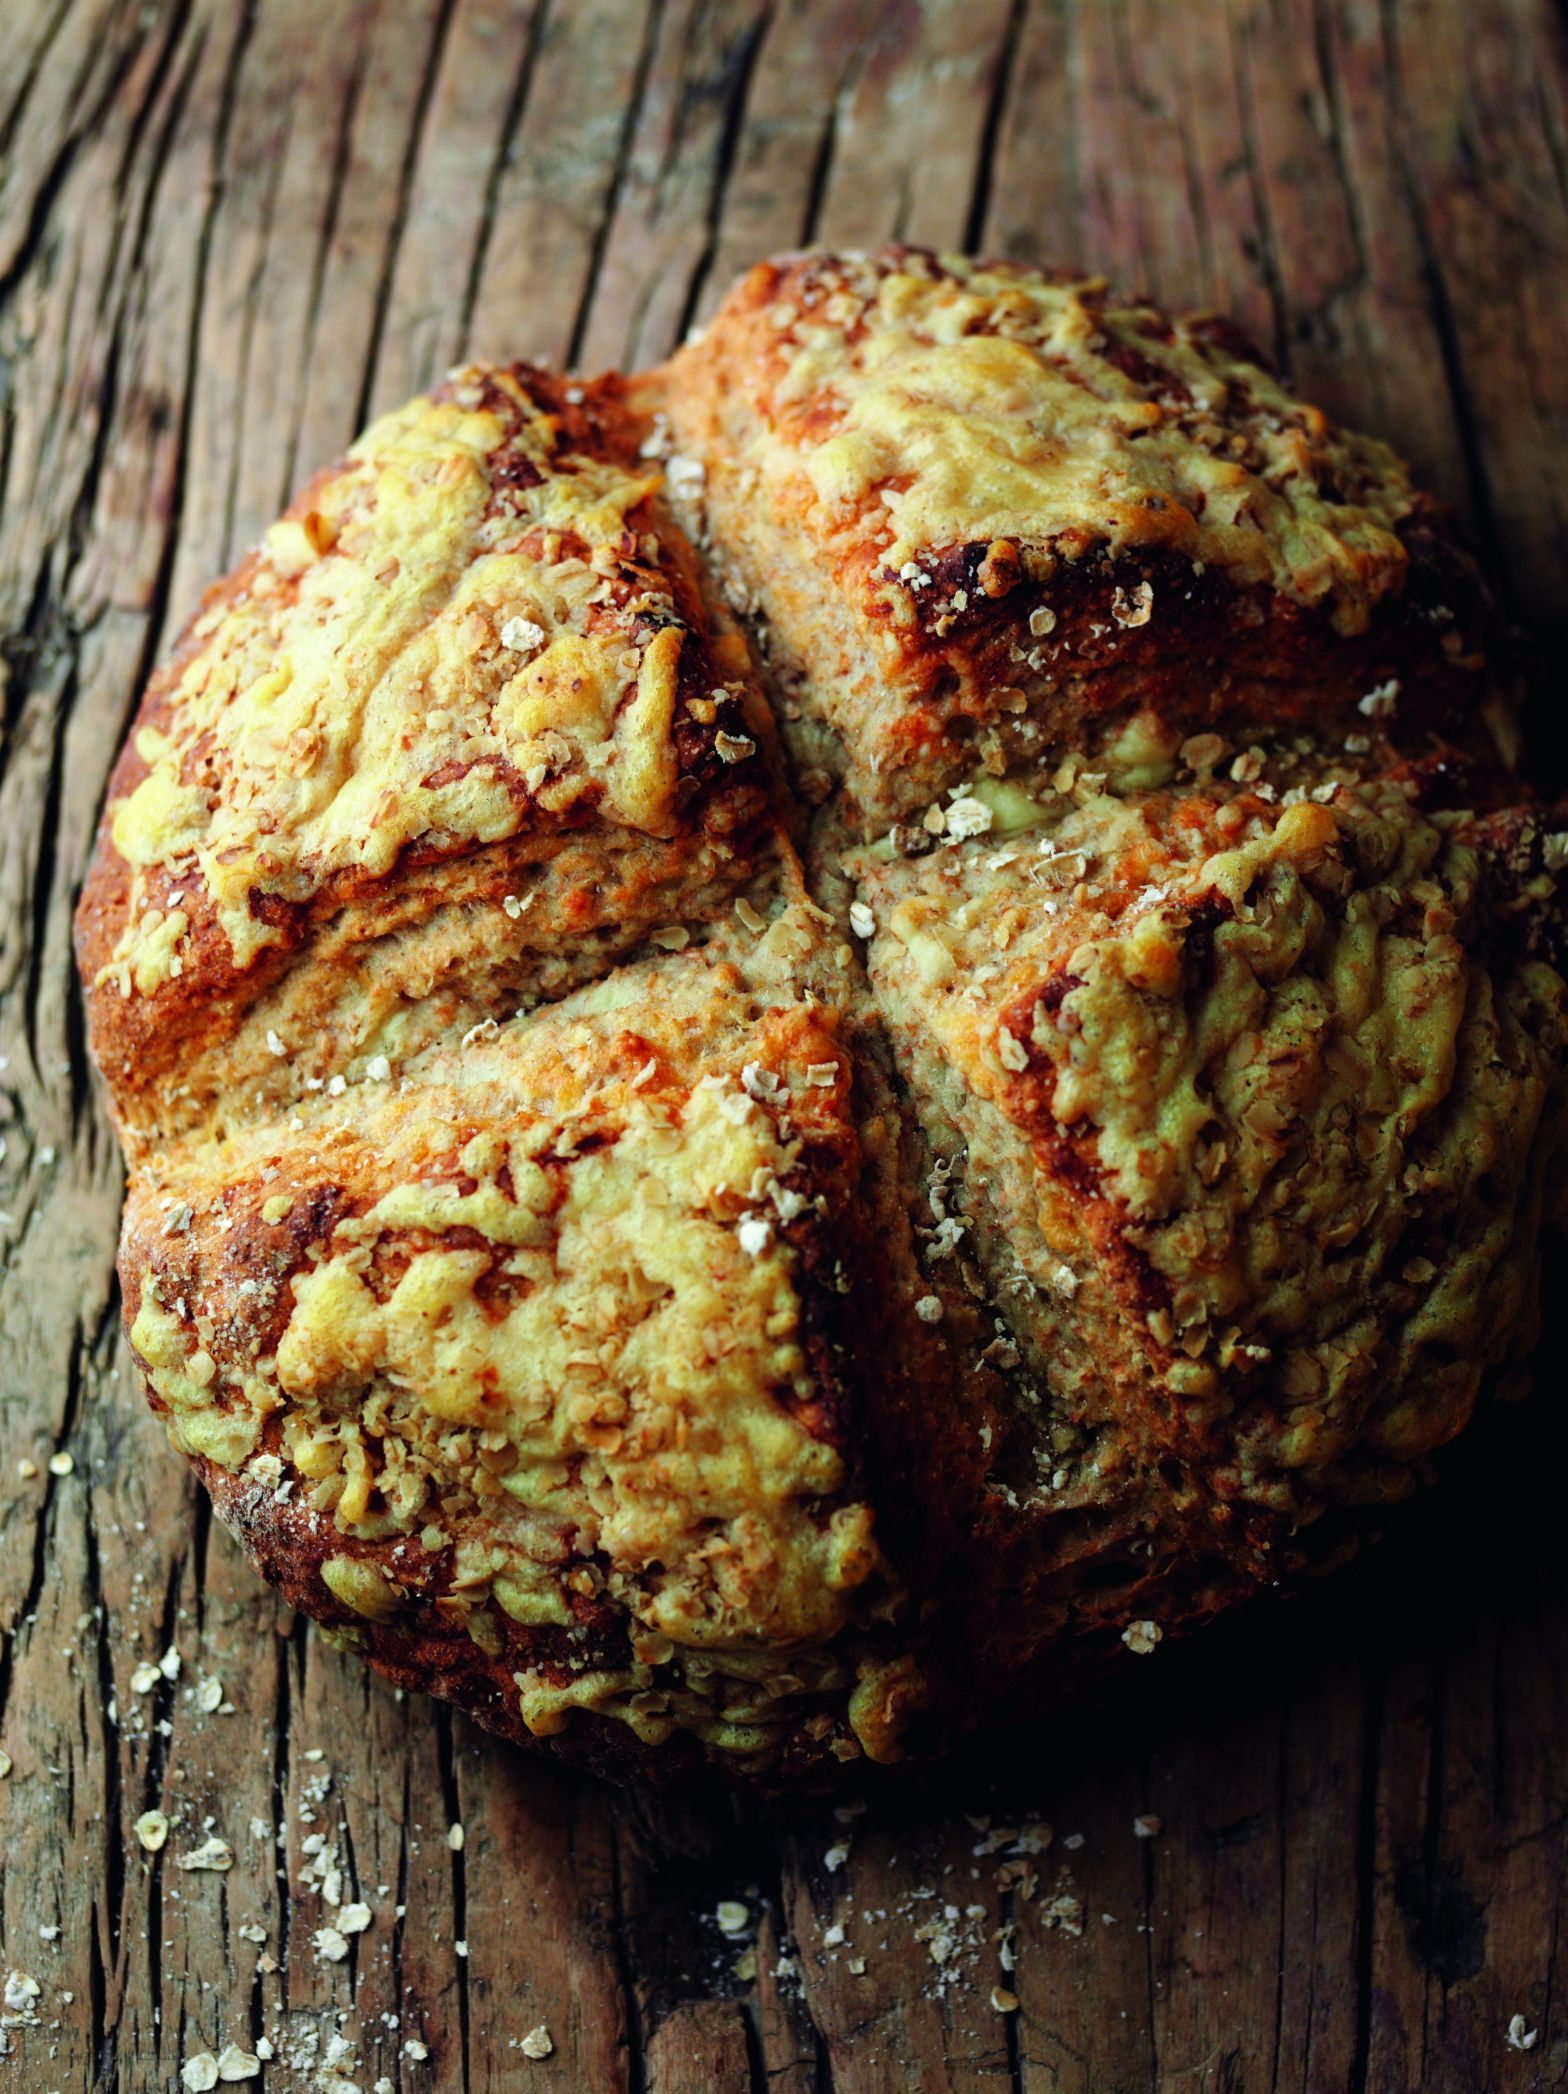 Can I Eat It iPhone App lets you know what is in the Rankin Irish Wholemeal Soda bread